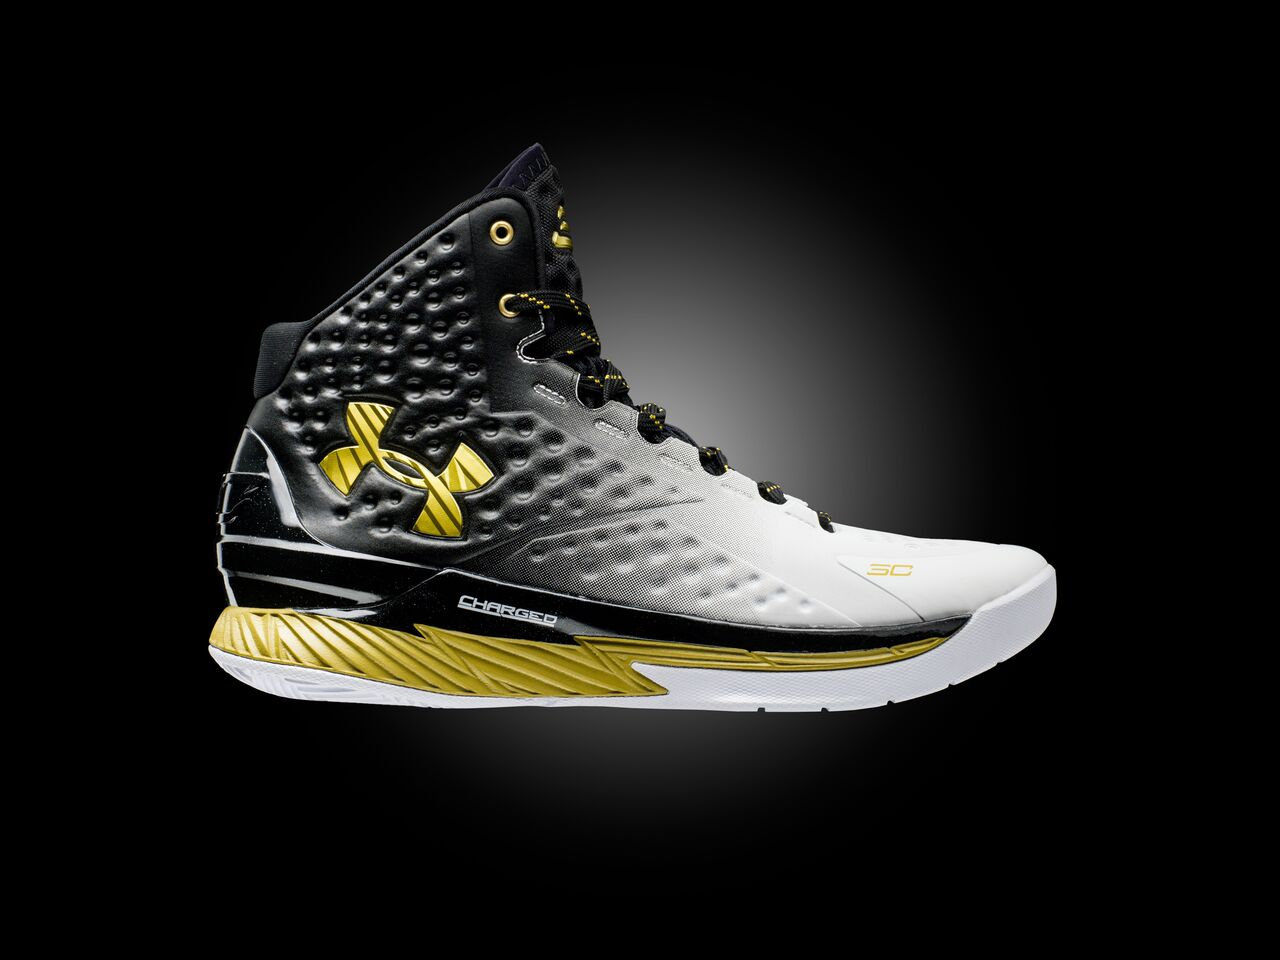 hyperdunk 2014 price stephen curry latest shoes